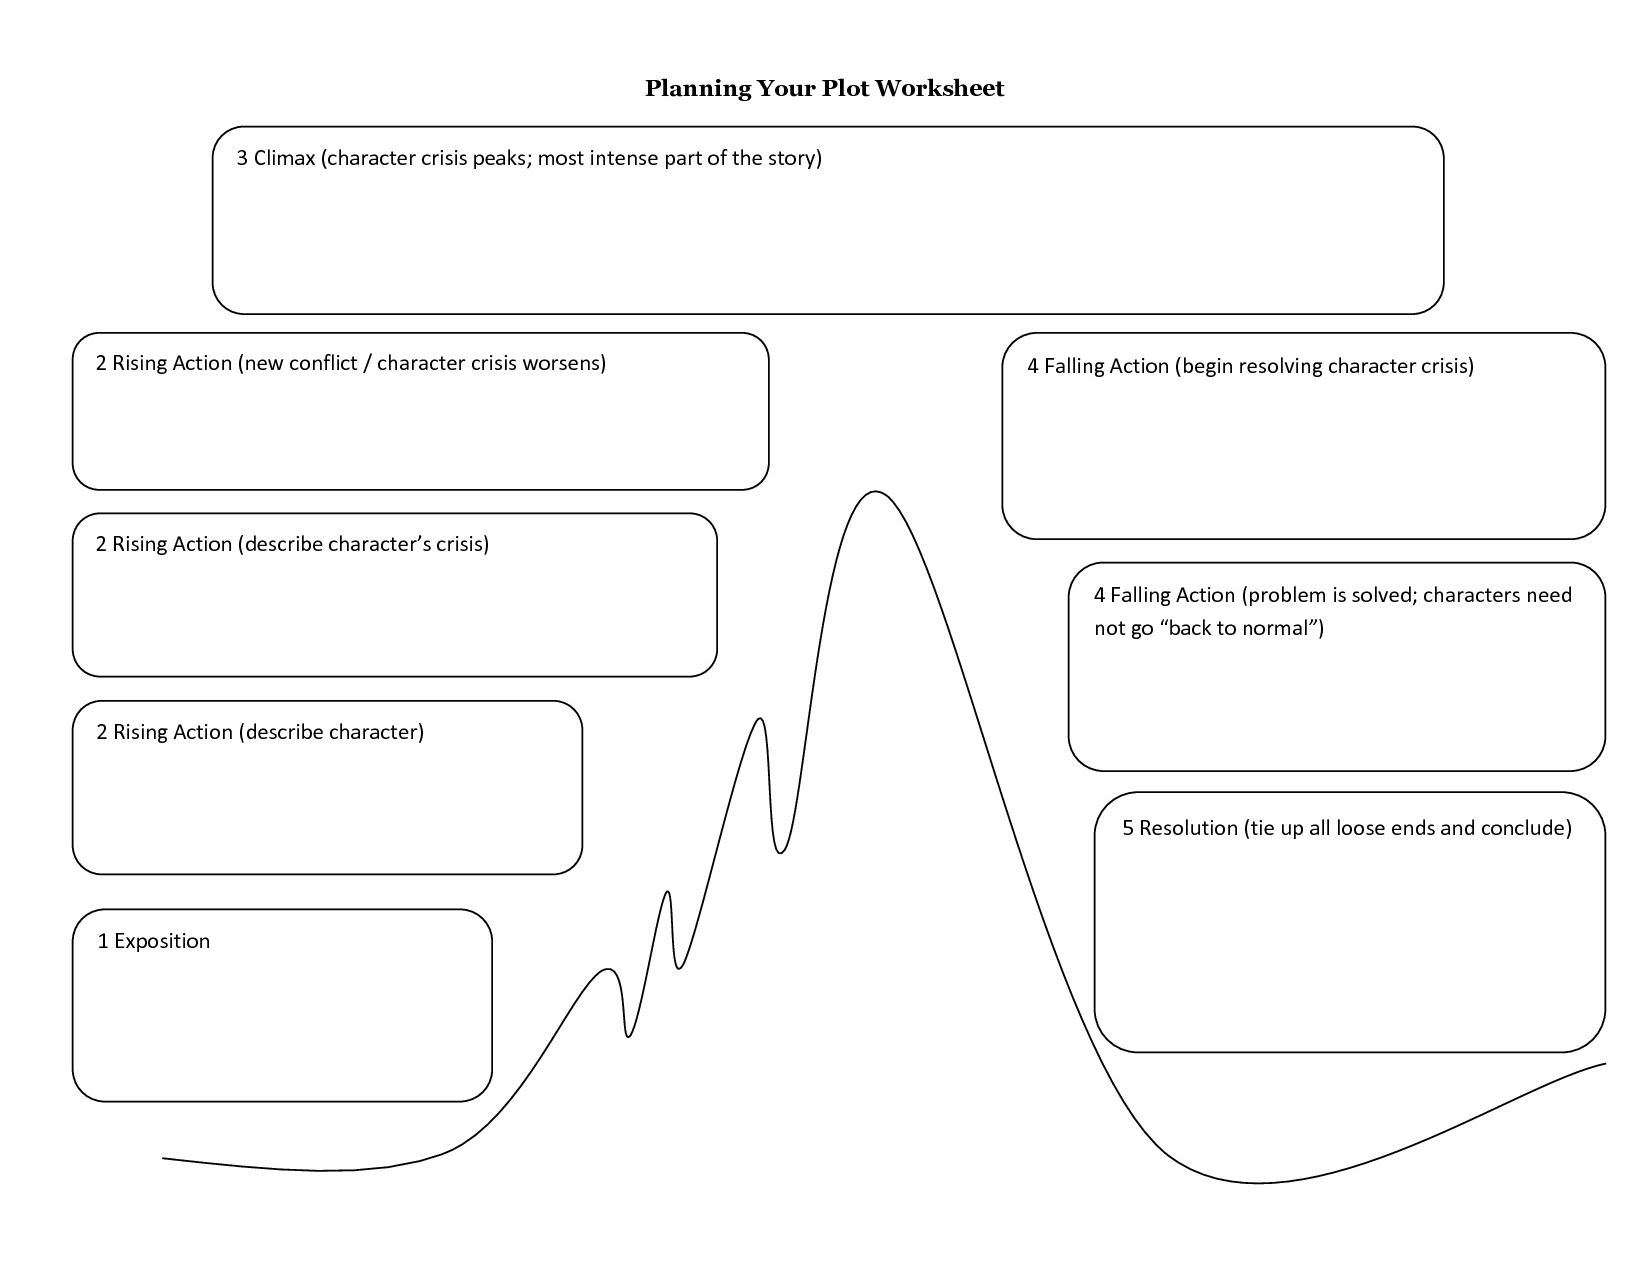 worksheet Action Potential Worksheet parts of a story worksheet planning your plot 1 exposition 2 rising action